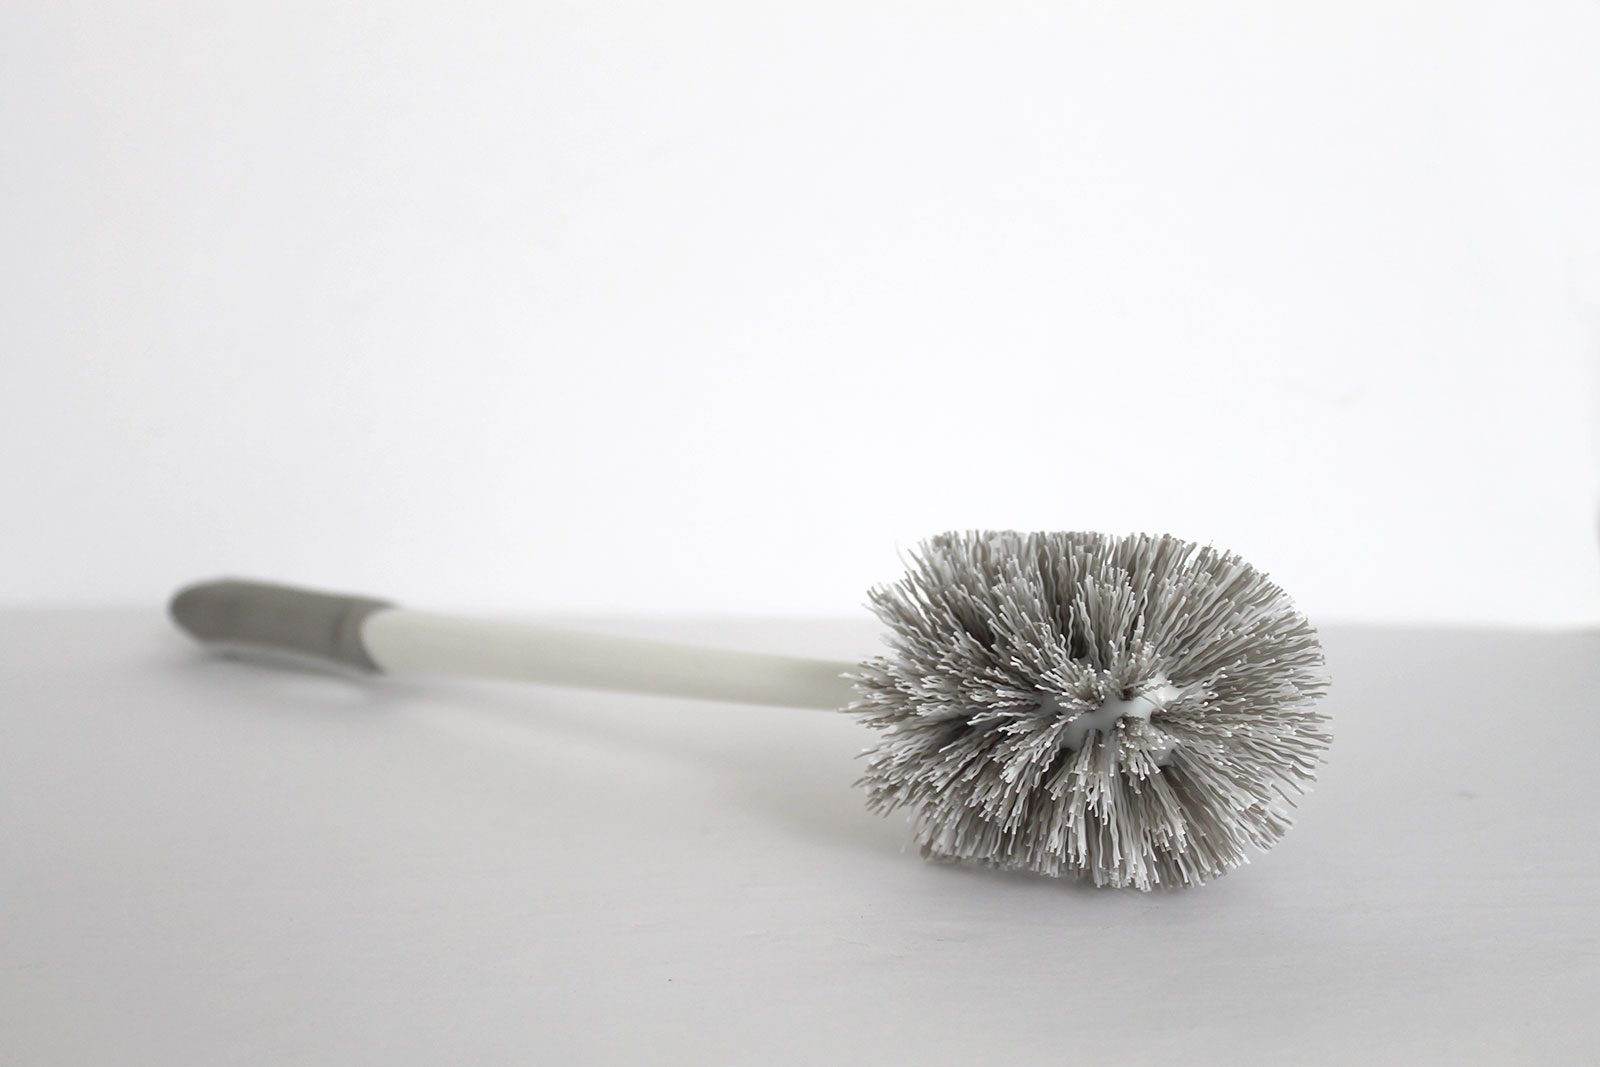 5 Best toilet brush options and best toilet brush holders for every cleaning job!